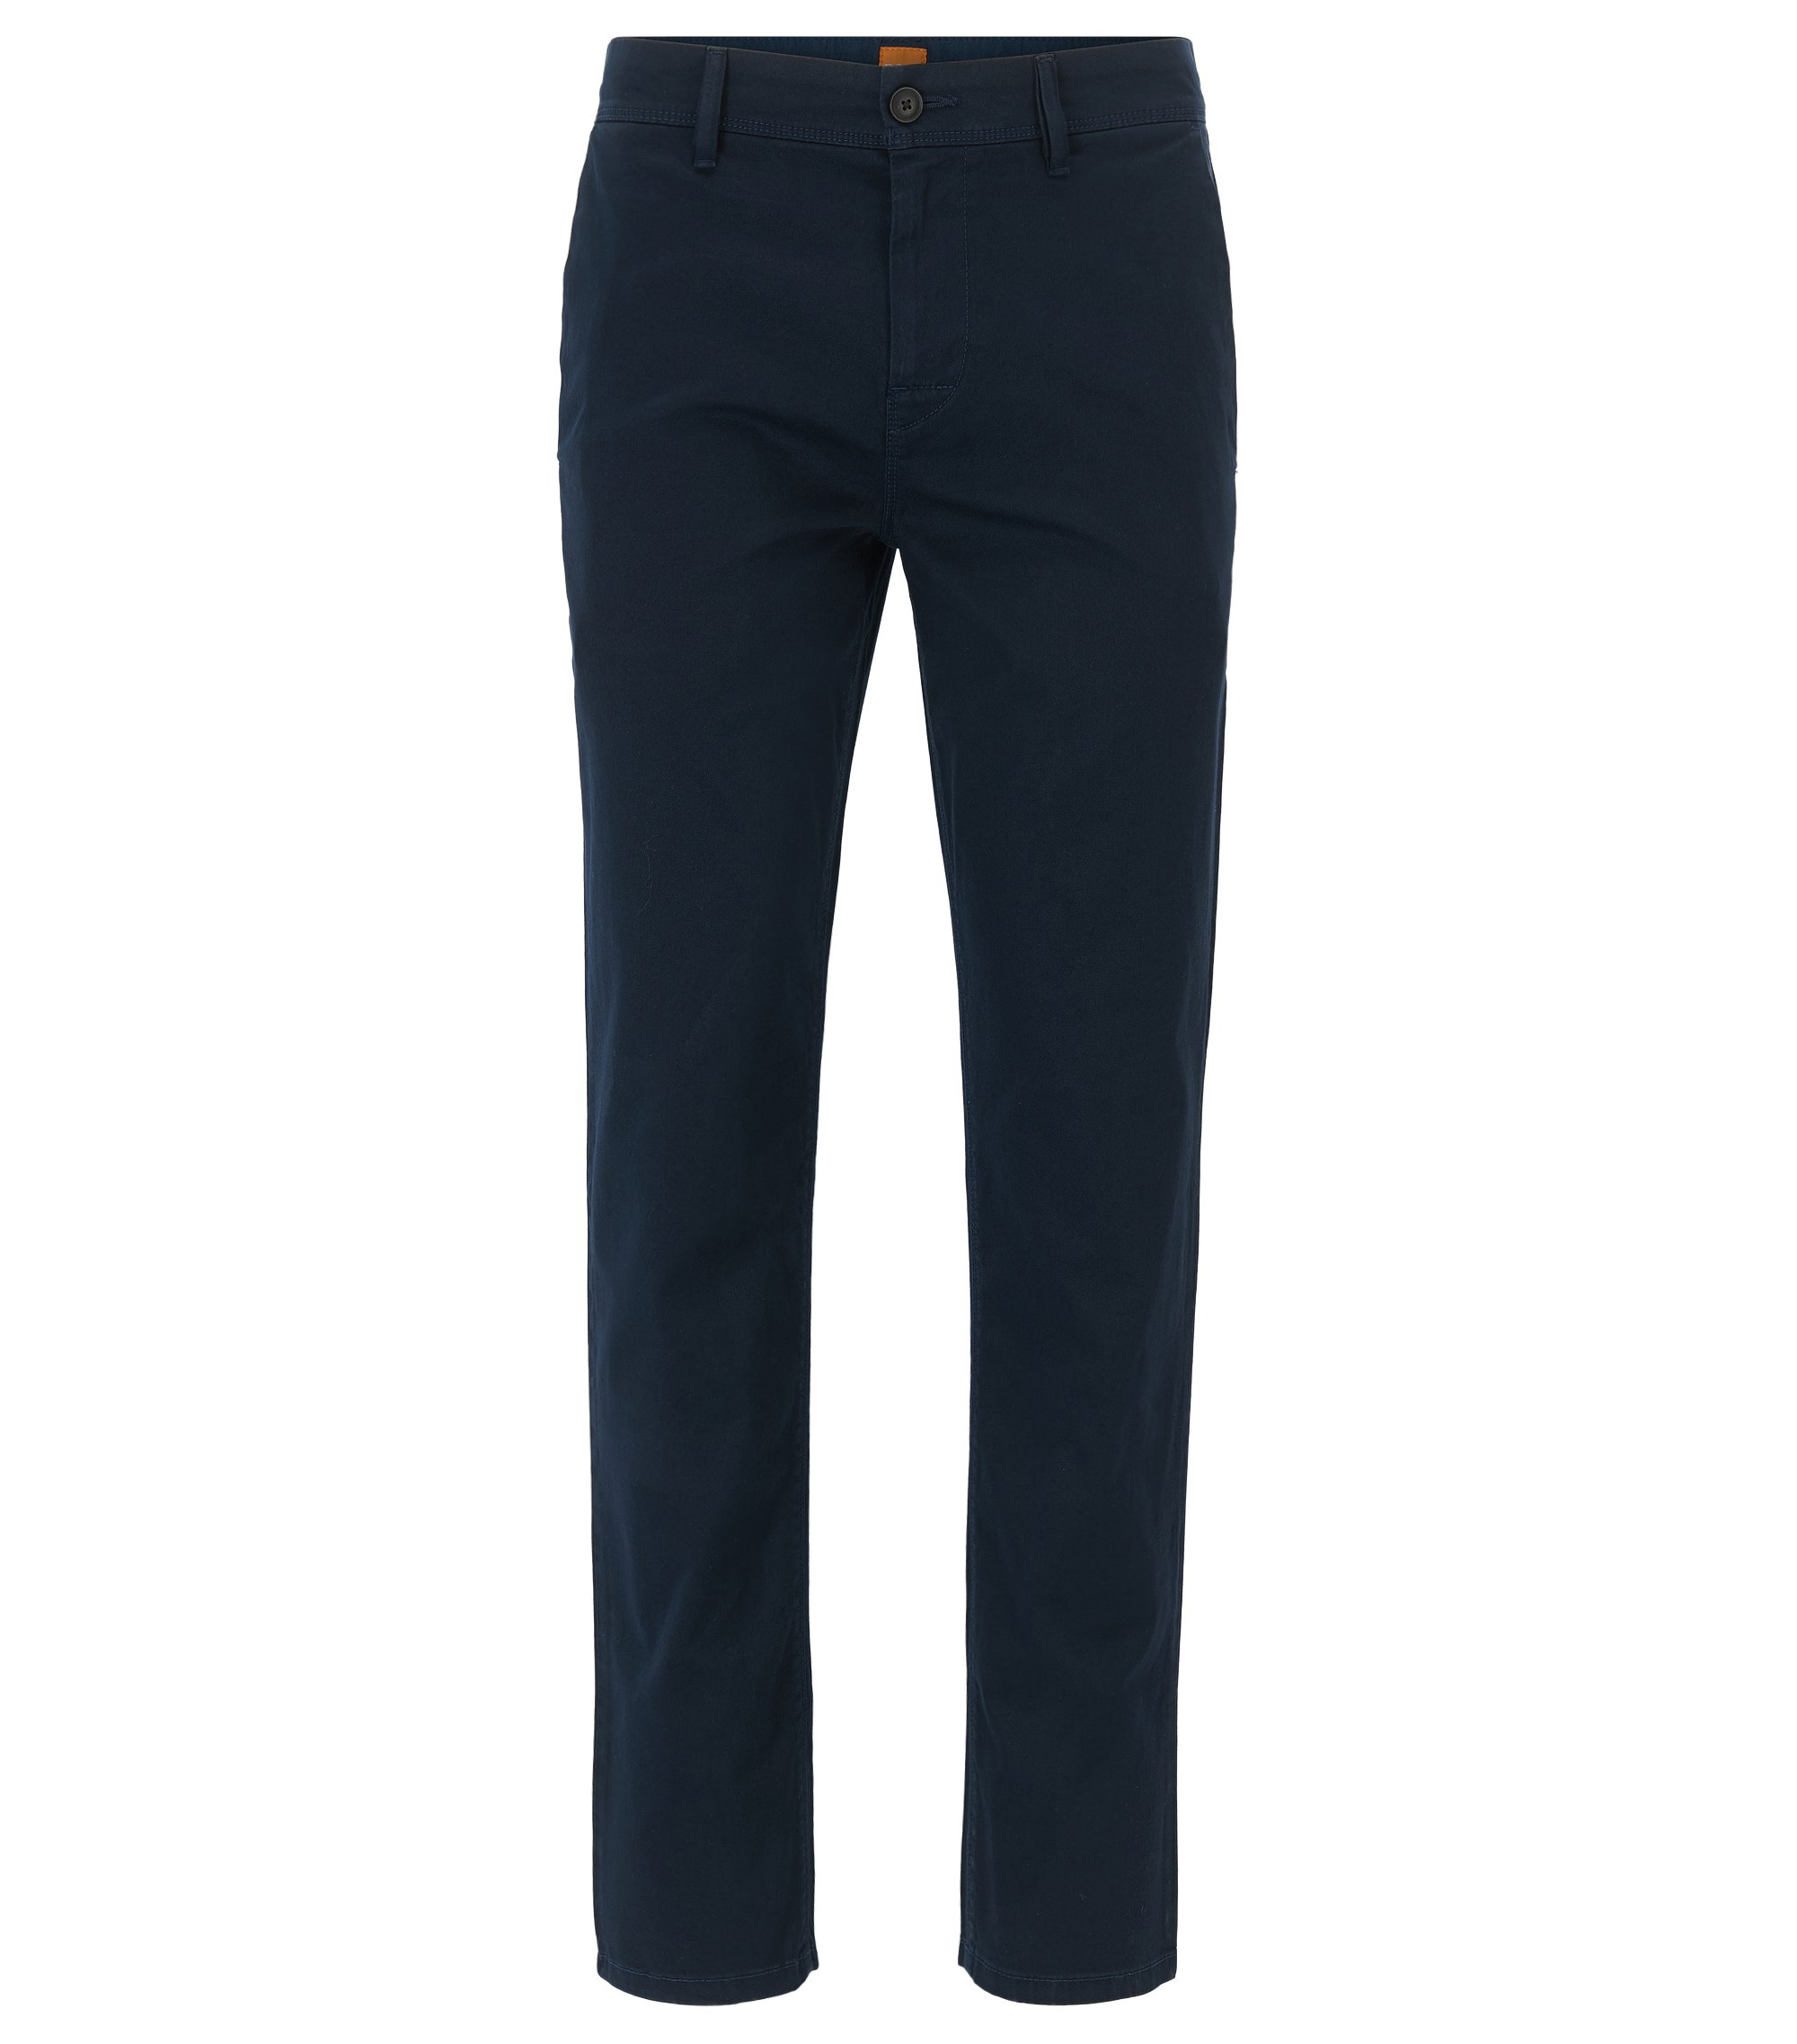 Pantaloni tapered fit in cotone elasticizzato, Blu scuro